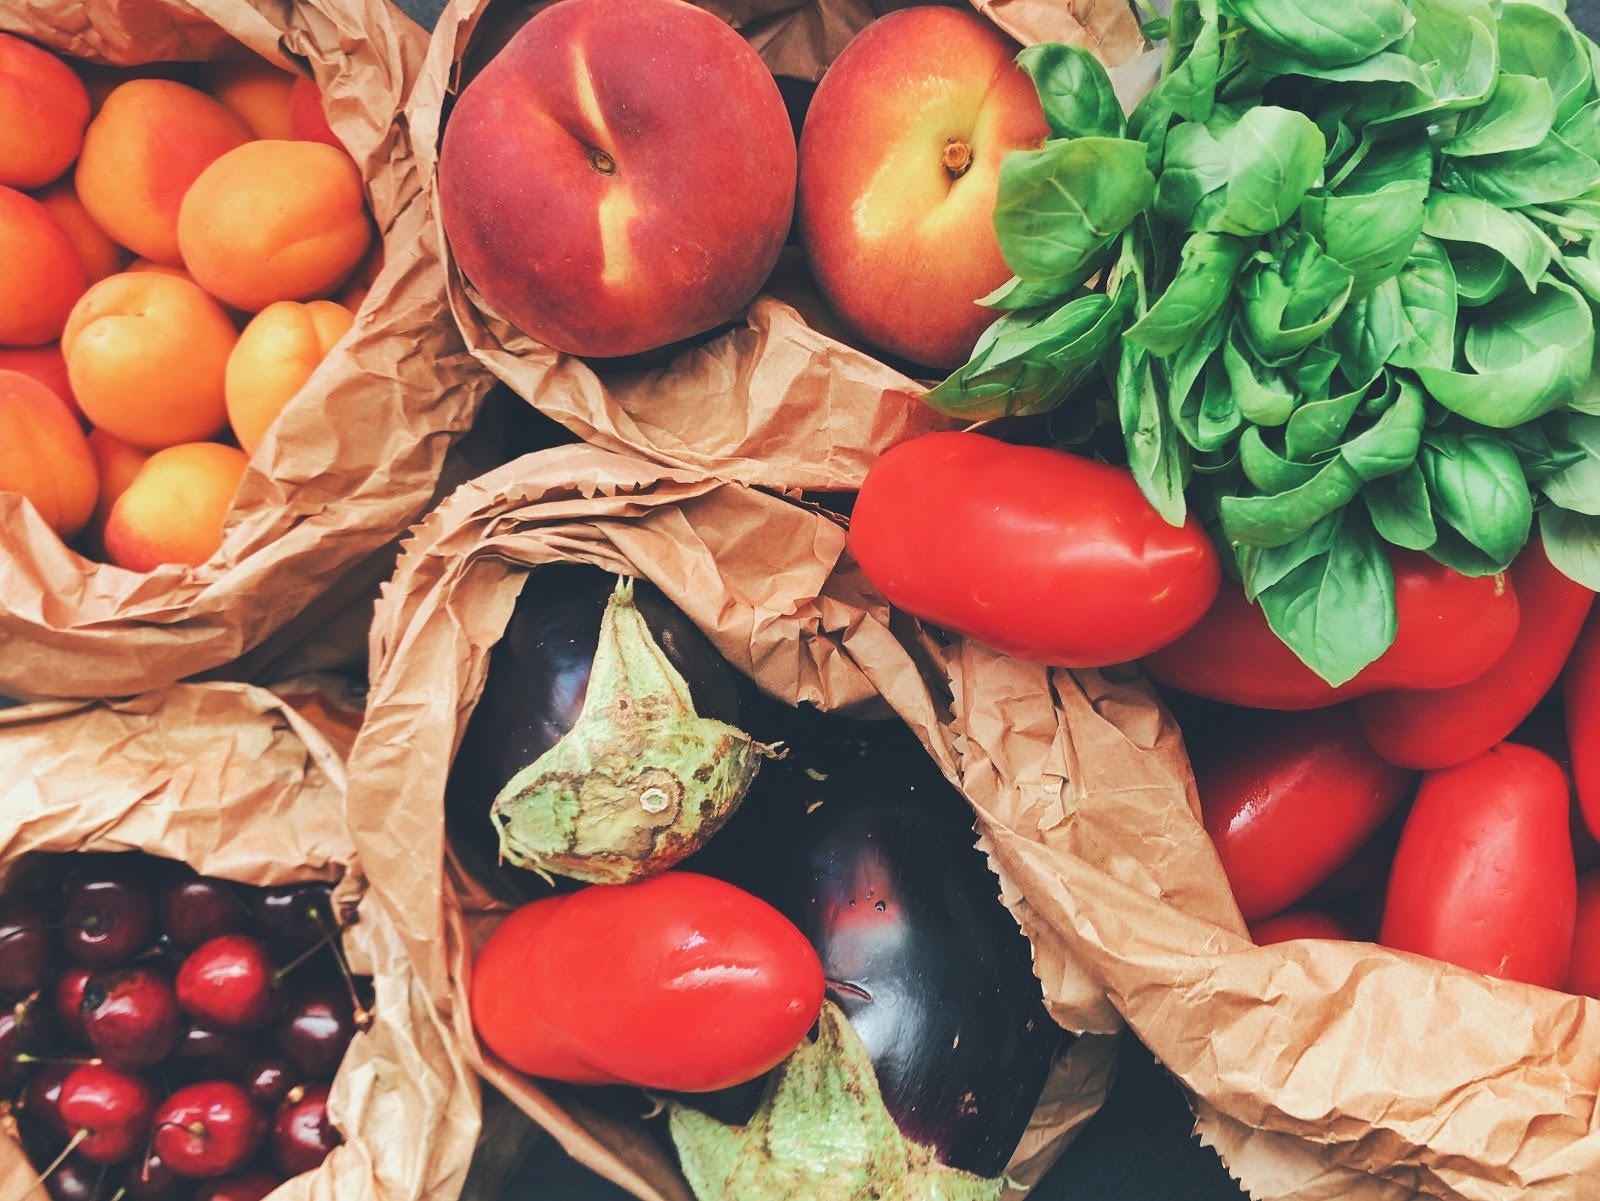 A bundle of healthy fruits and vegetables rich in antioxidants.